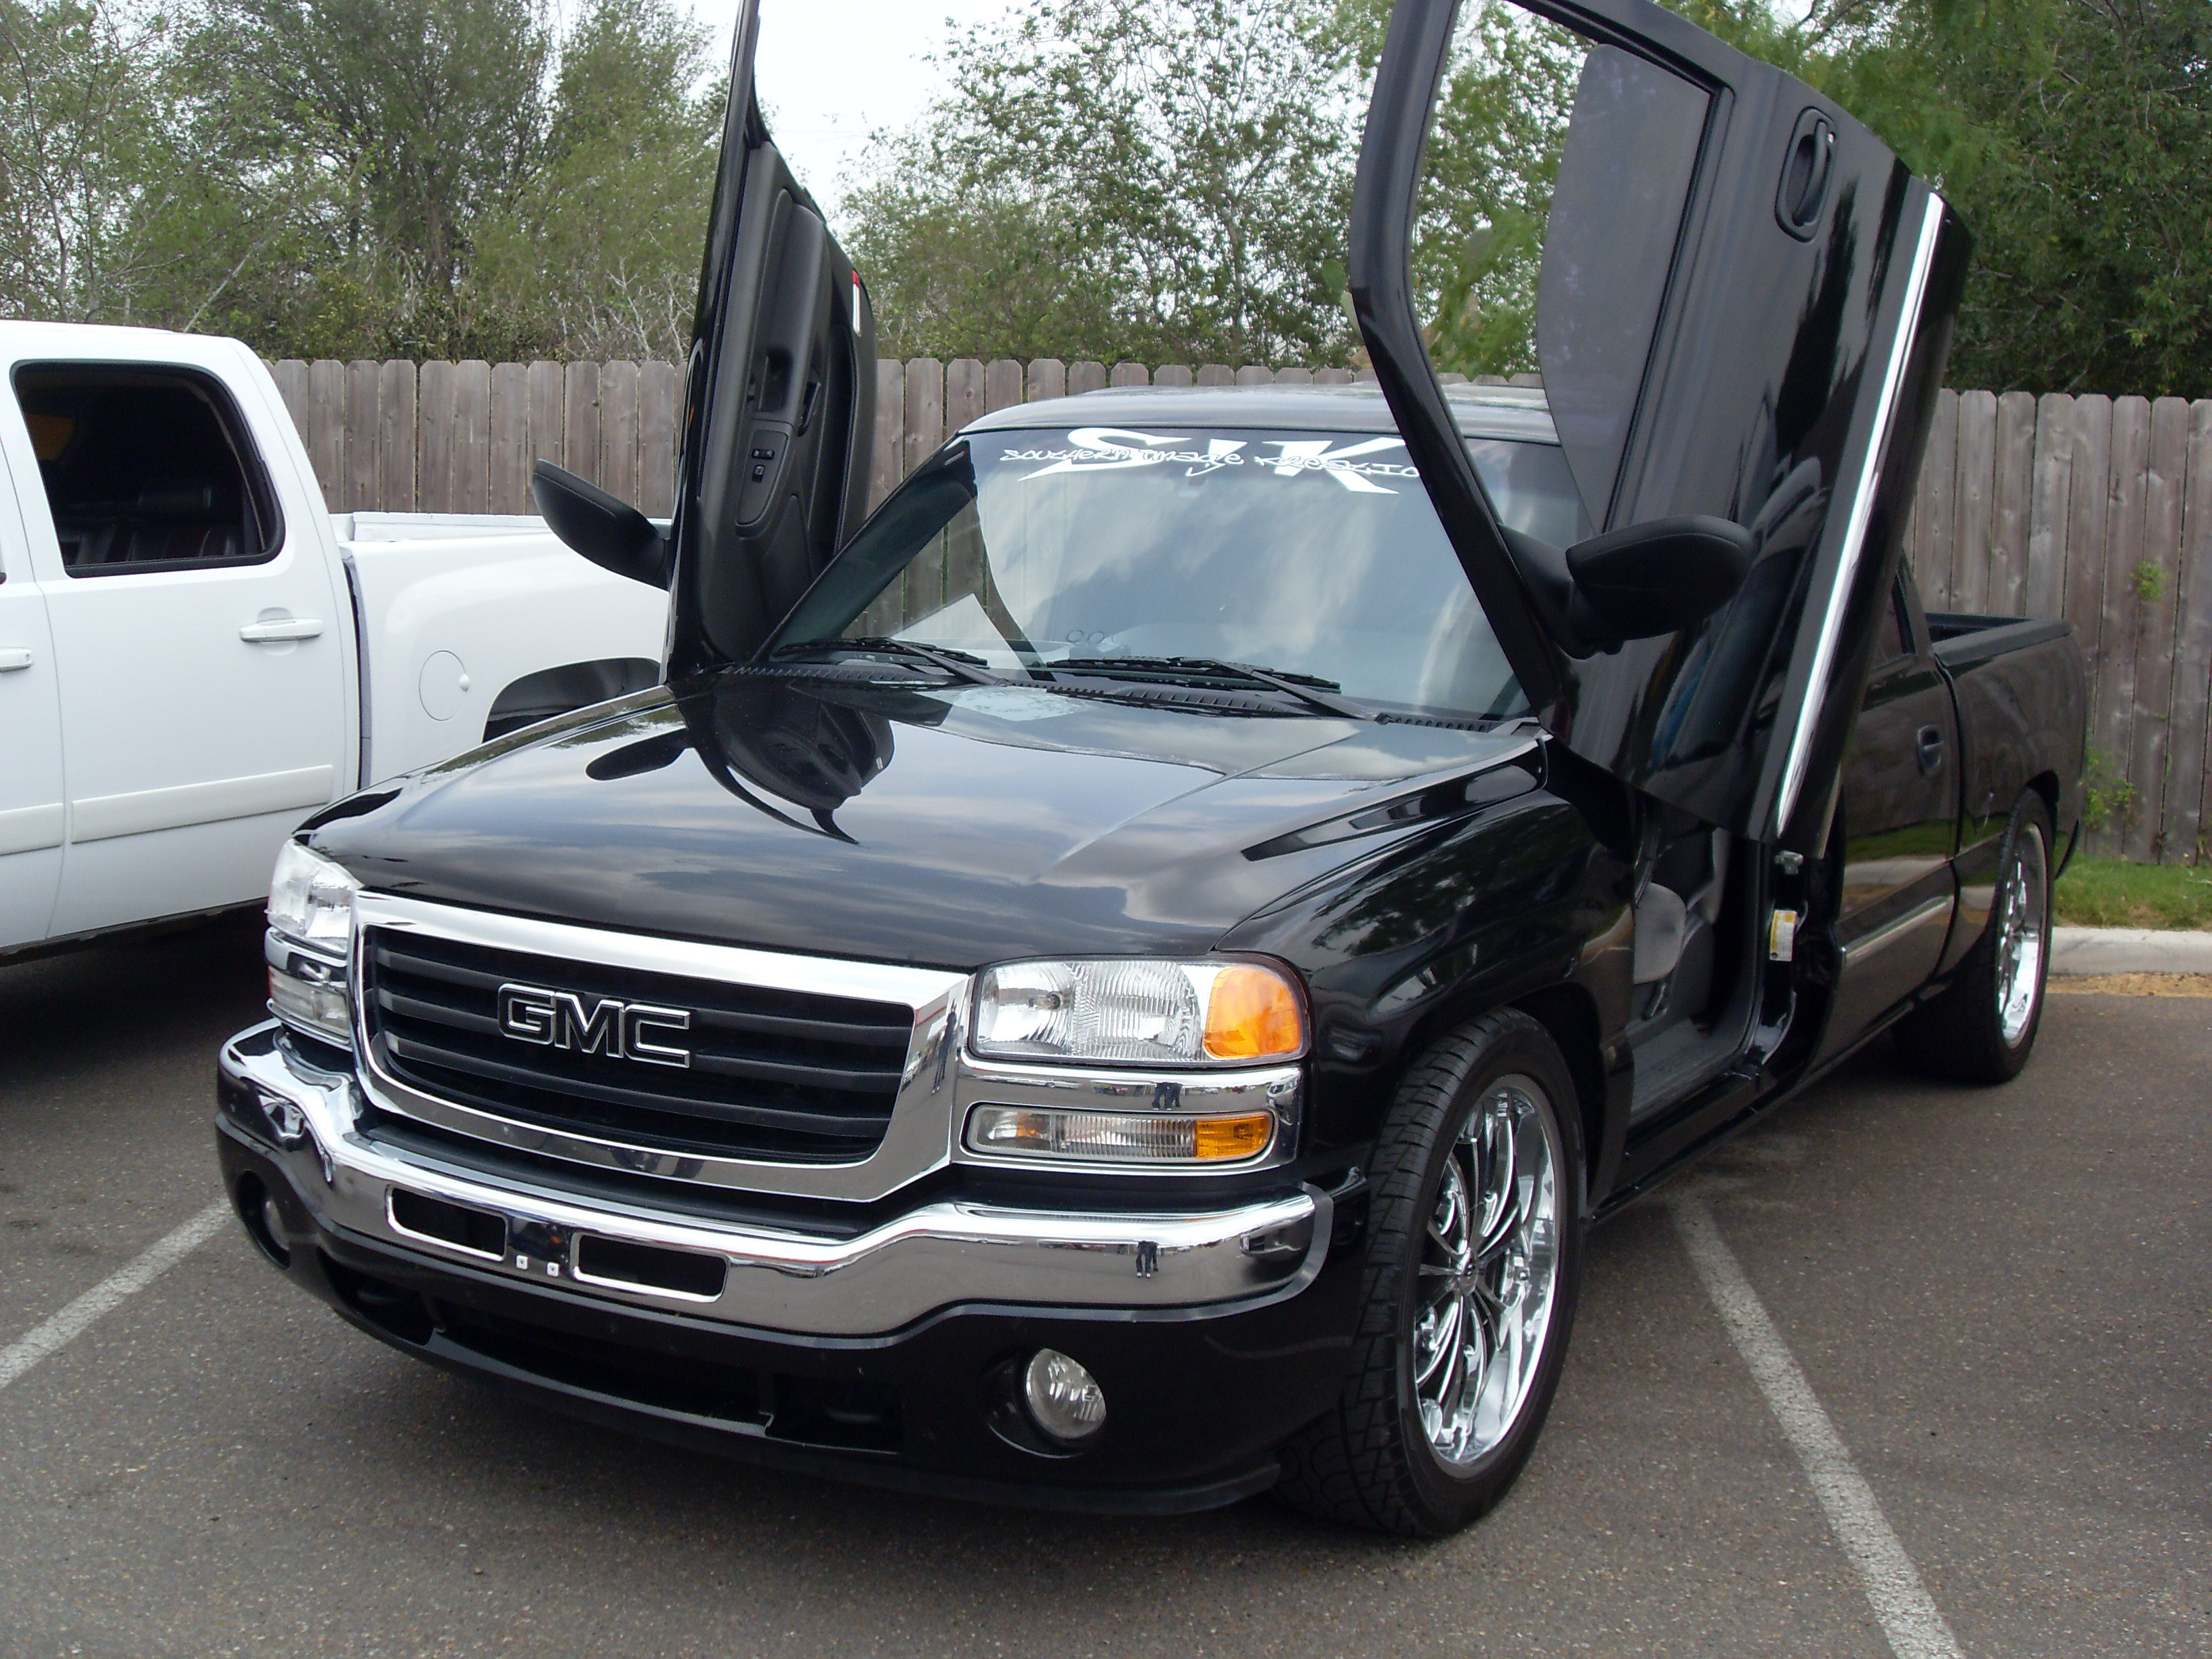 oc nali 2006 gmc sierra 1500 crew cab specs photos modification info at cardomain. Black Bedroom Furniture Sets. Home Design Ideas